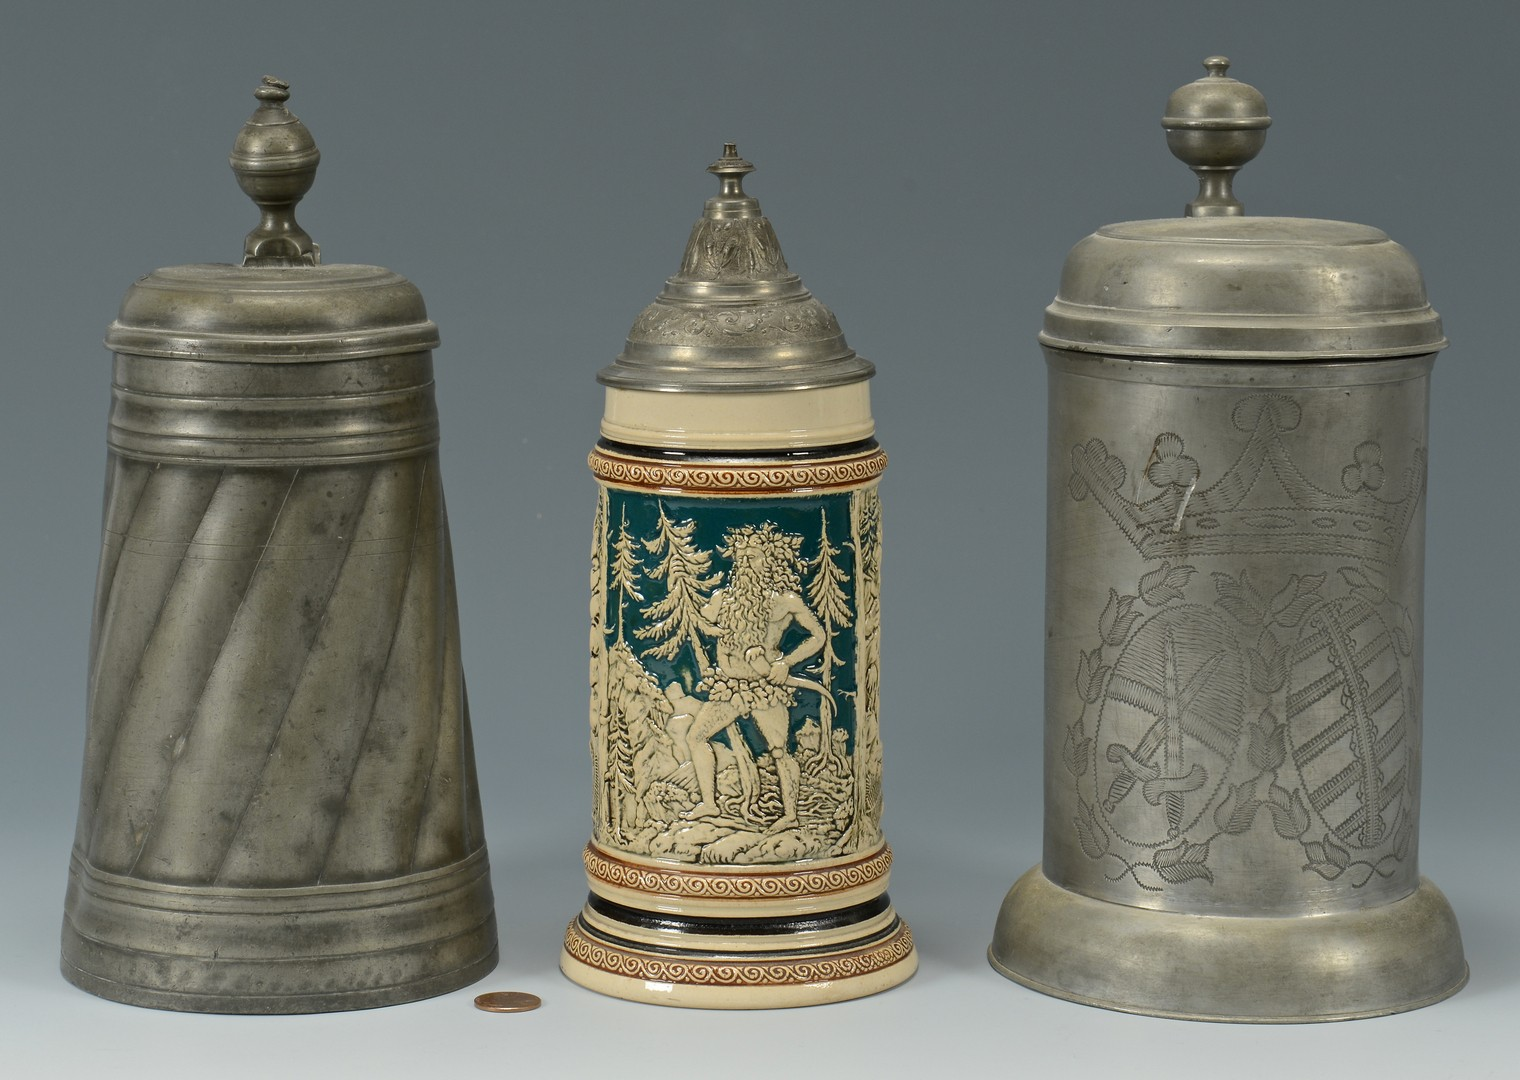 Lot 769: 3 Ceramic and Pewter Steins